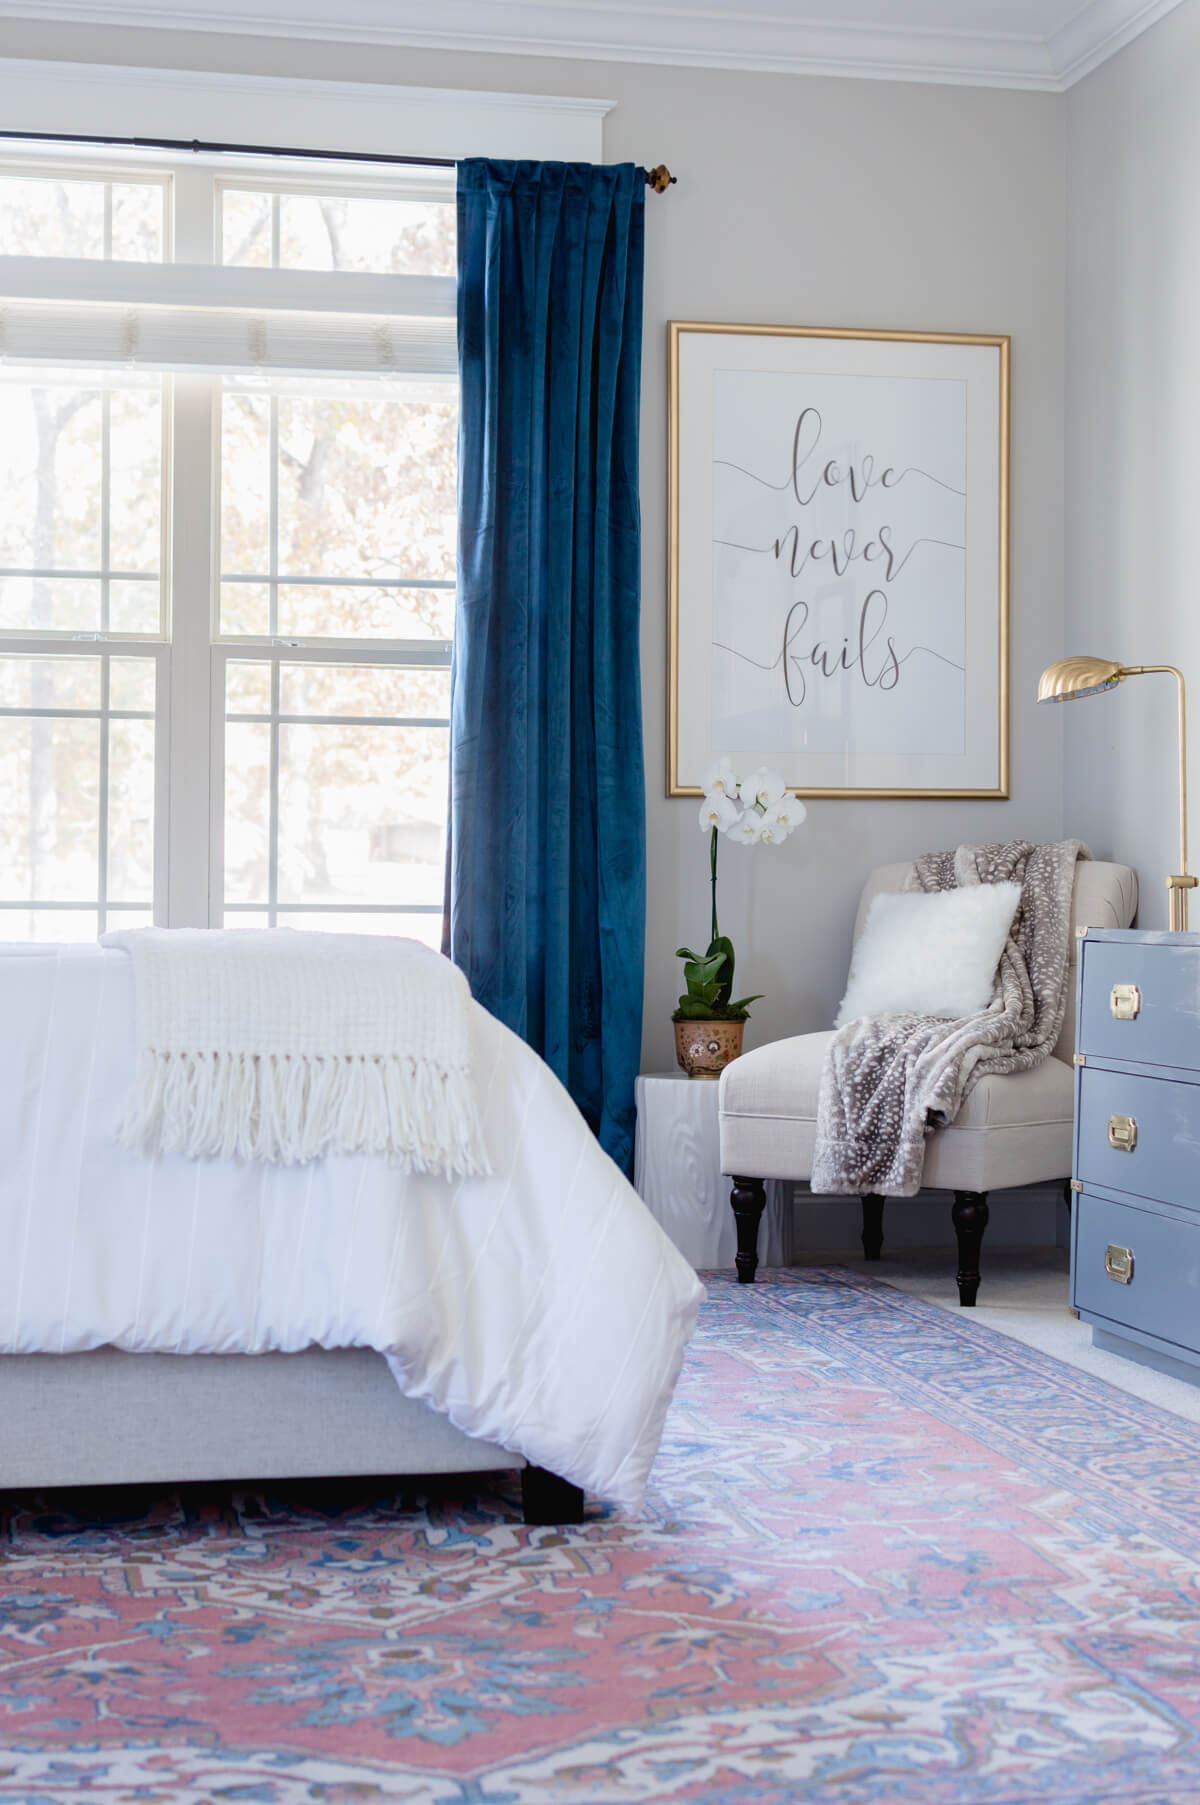 Glam master bedroom makeover | thehomeicreate.com